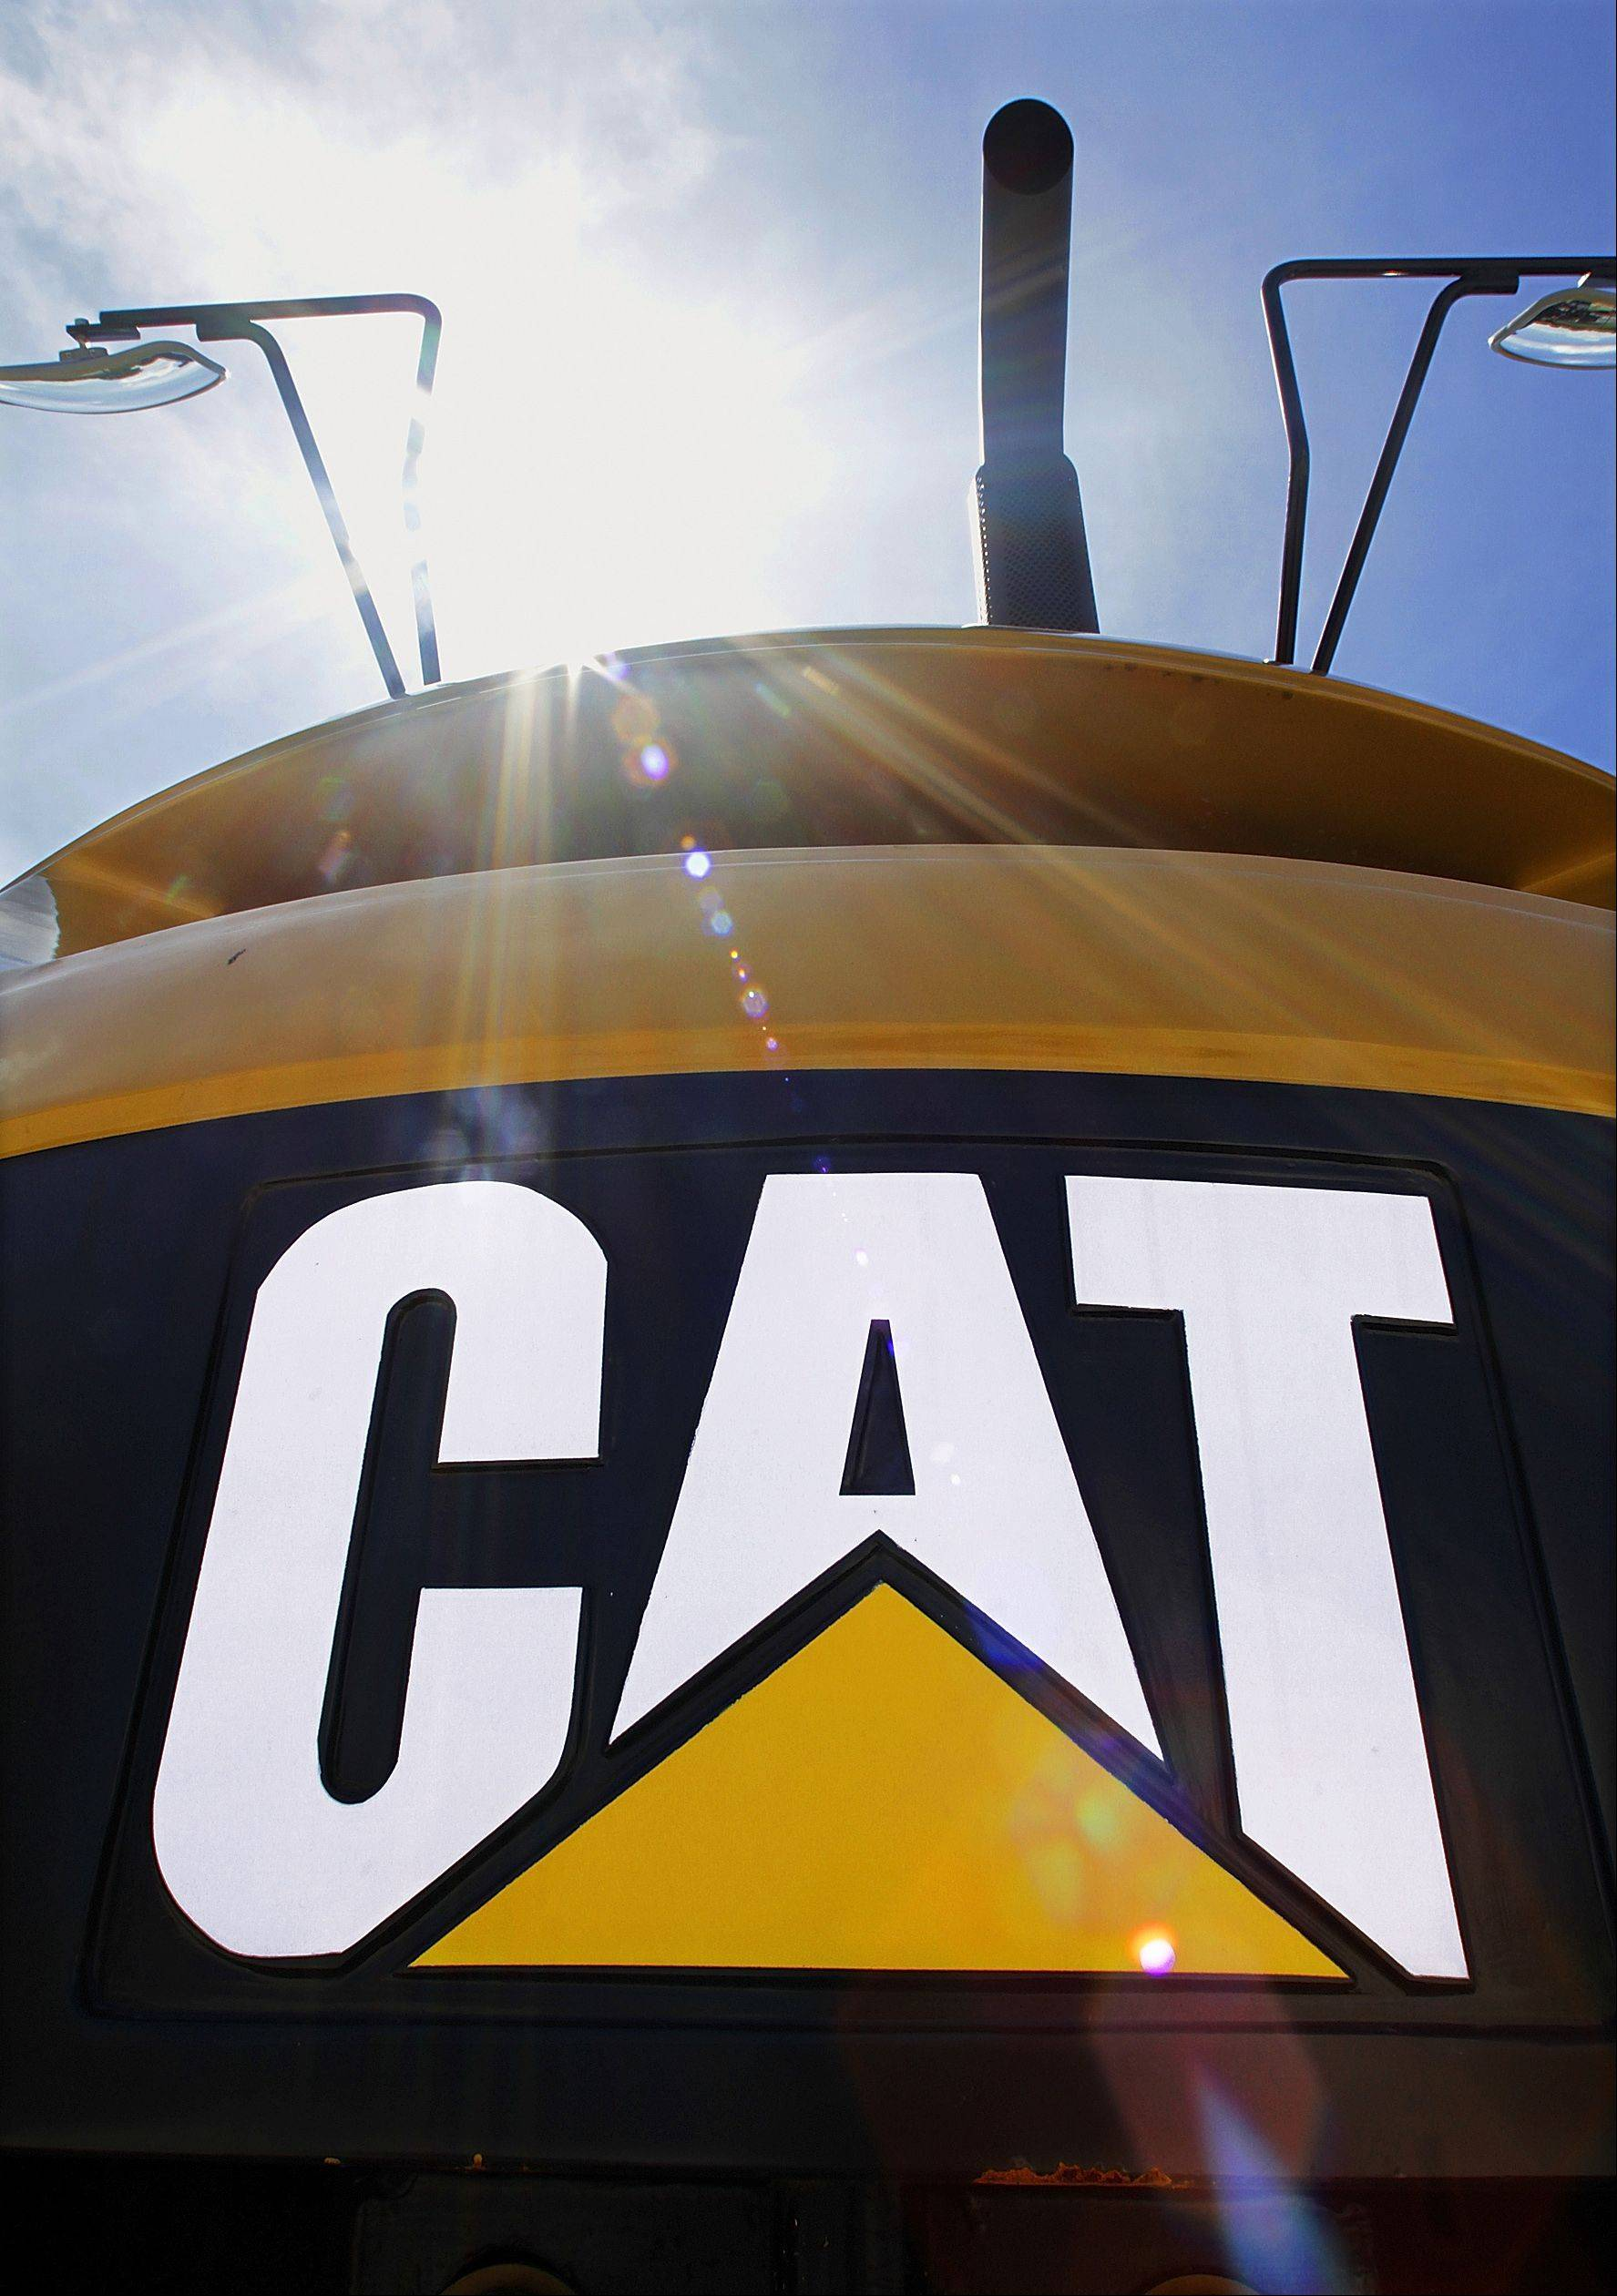 In this July 19, 2010 photo, the Caterpillar logo is displayed on heavy earth moving equipment in Springfield, Ill. Heavy machinery manufacturer Caterpillar said Thursday, July 22, 2010, its second-quarter earnings shot up 91 percent on a big increase in sales of equipment for industries like mining, infrastructure and energy. (AP Photo/Seth Perlman)